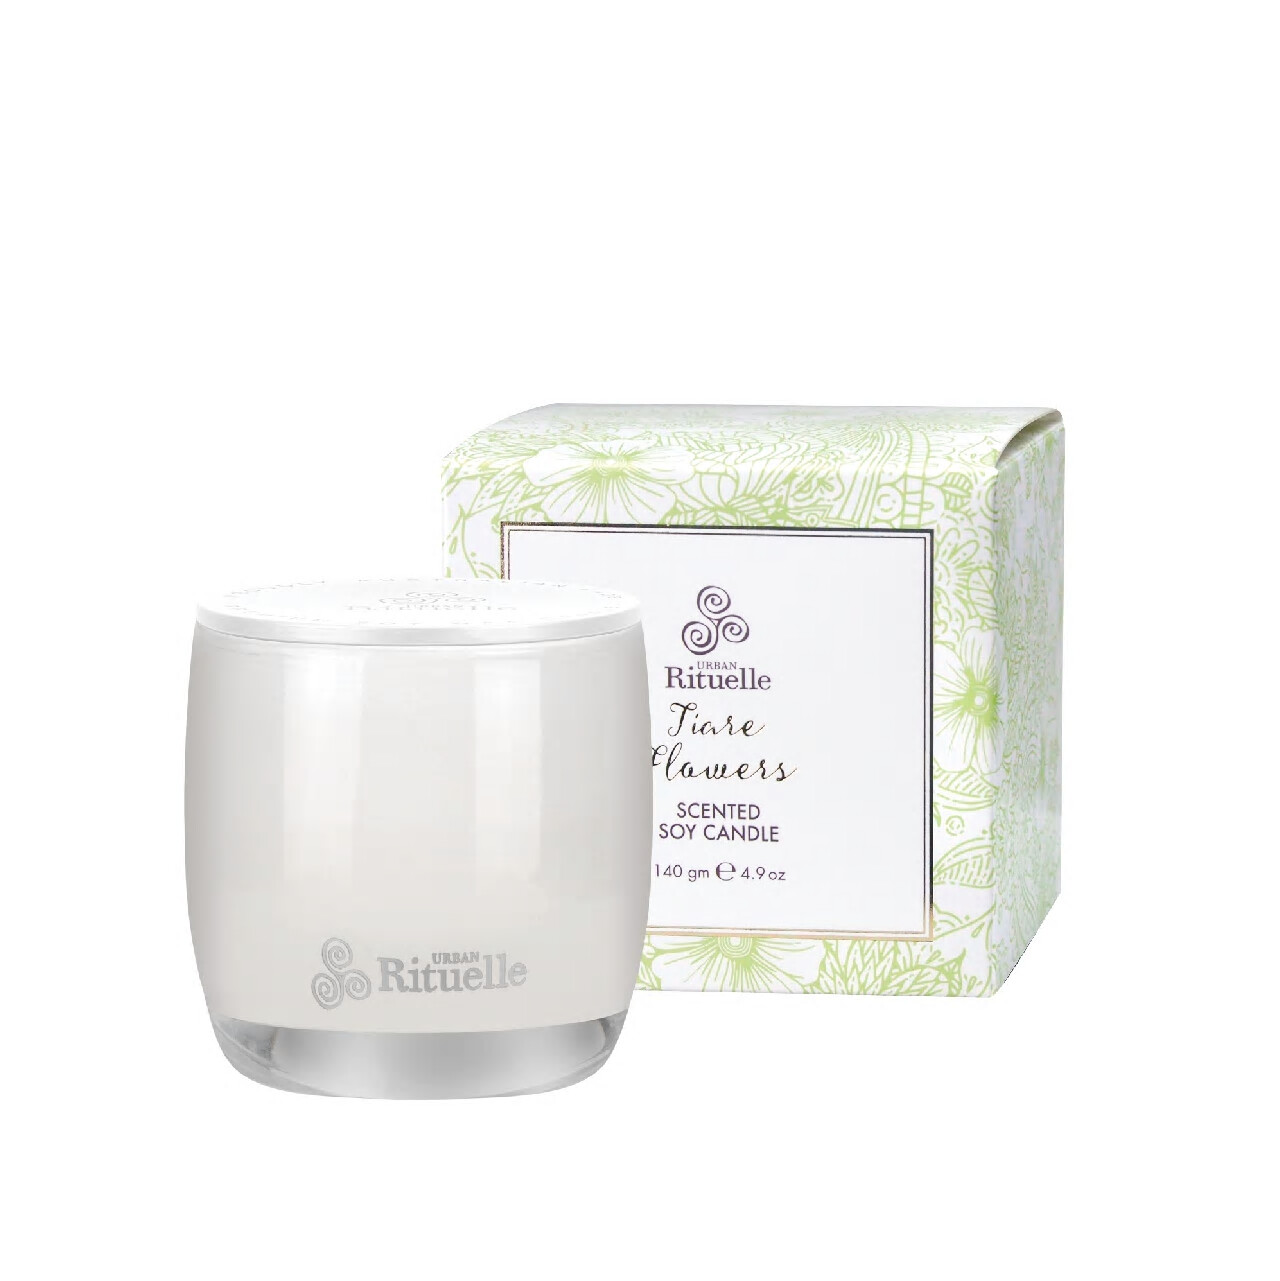 Urban Rituelle Scented Soy Candle - Tiare Flowers